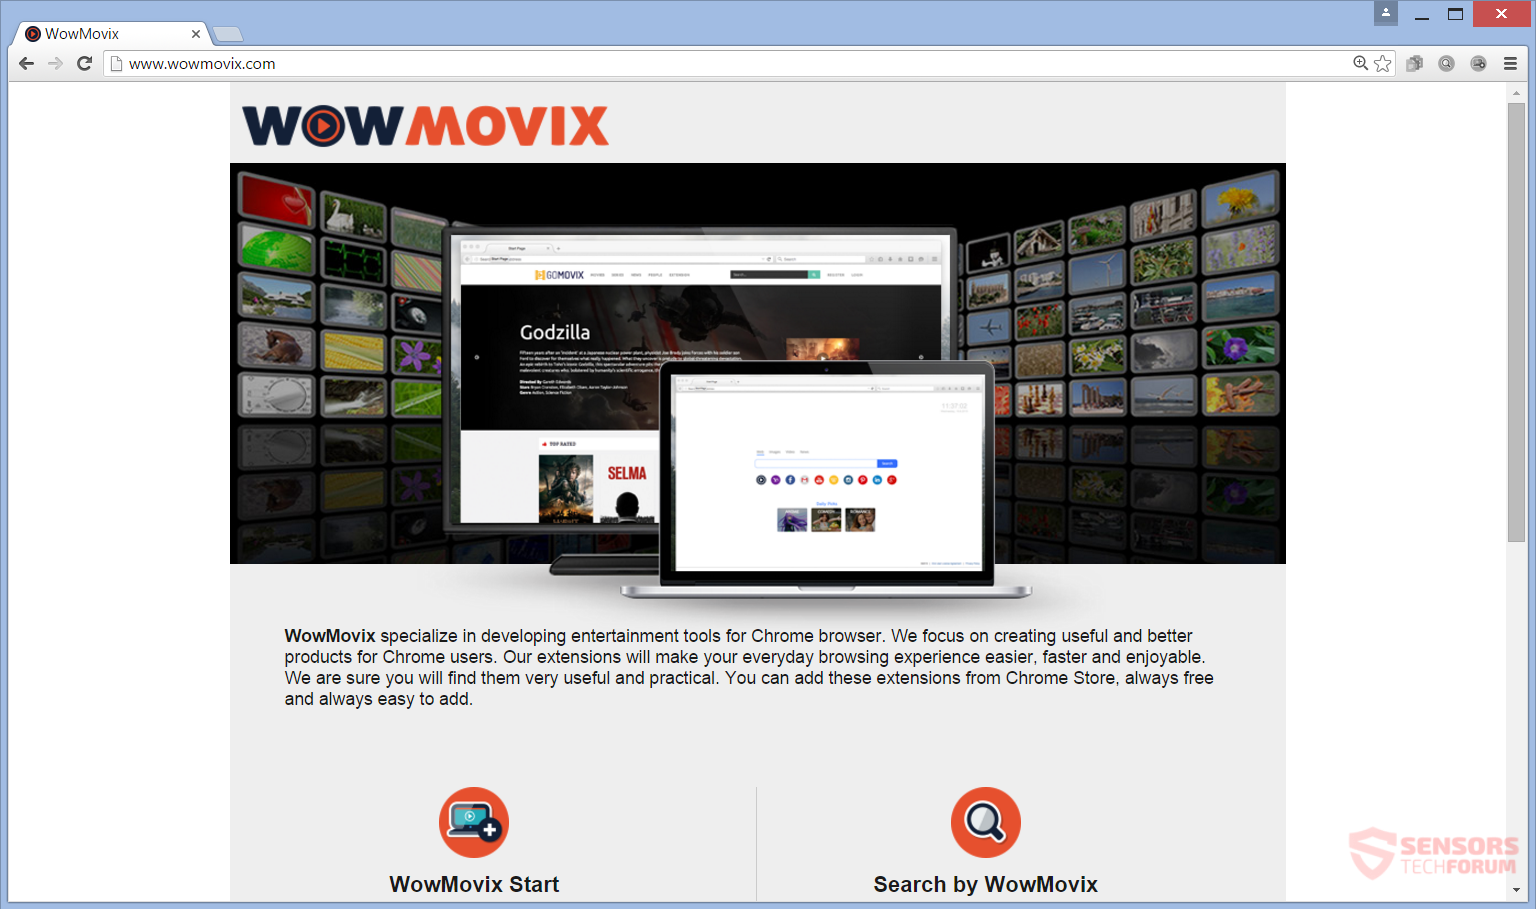 STF-wowmovix-gomovix-com-wow-movix-searchalgo-com-search-algo-main-site pirate de l'air